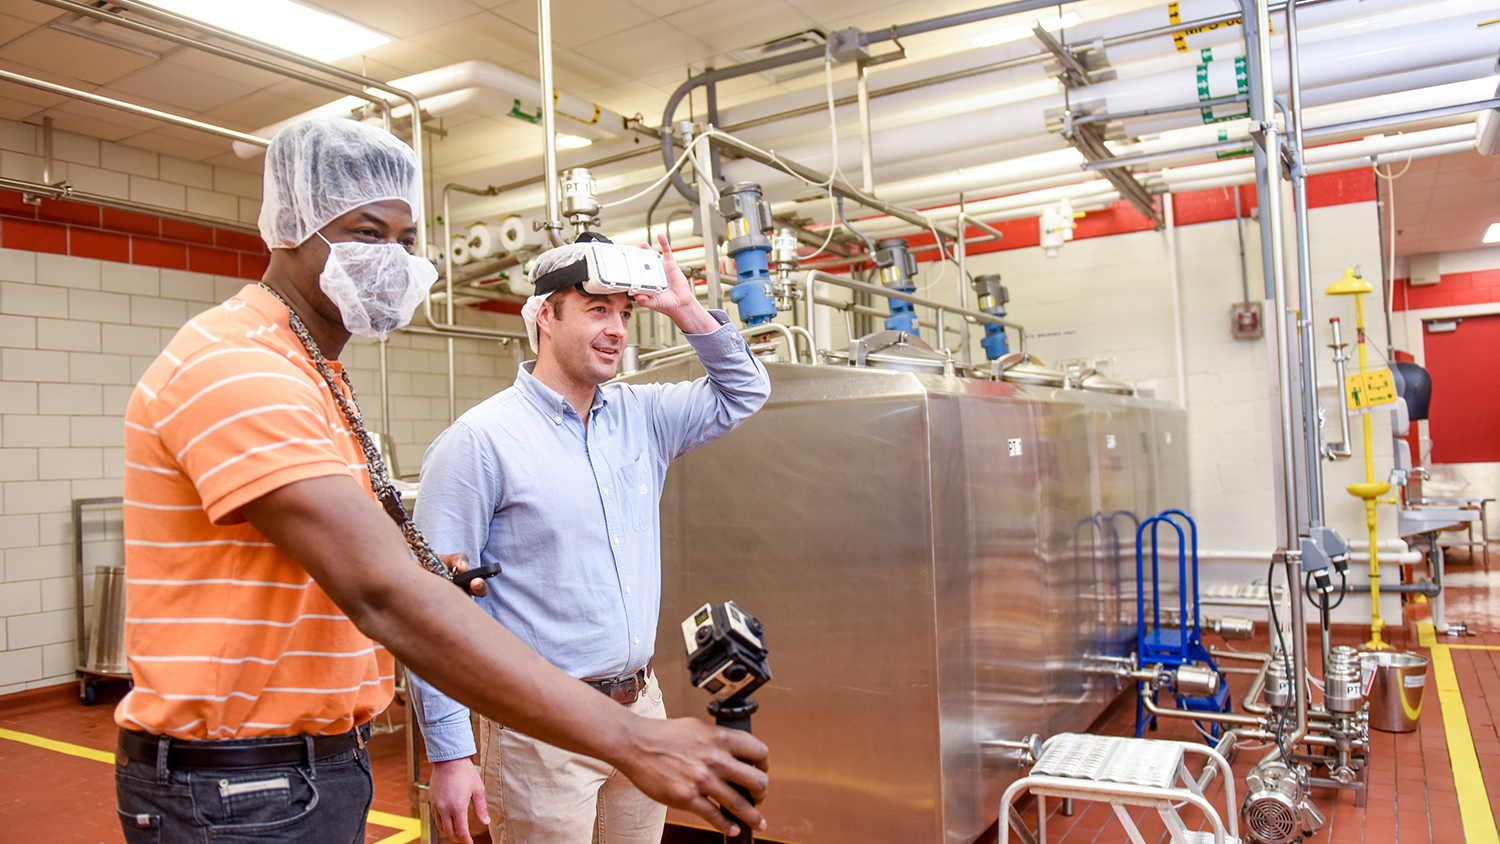 Two men operate VR equipment in a food processing facility.